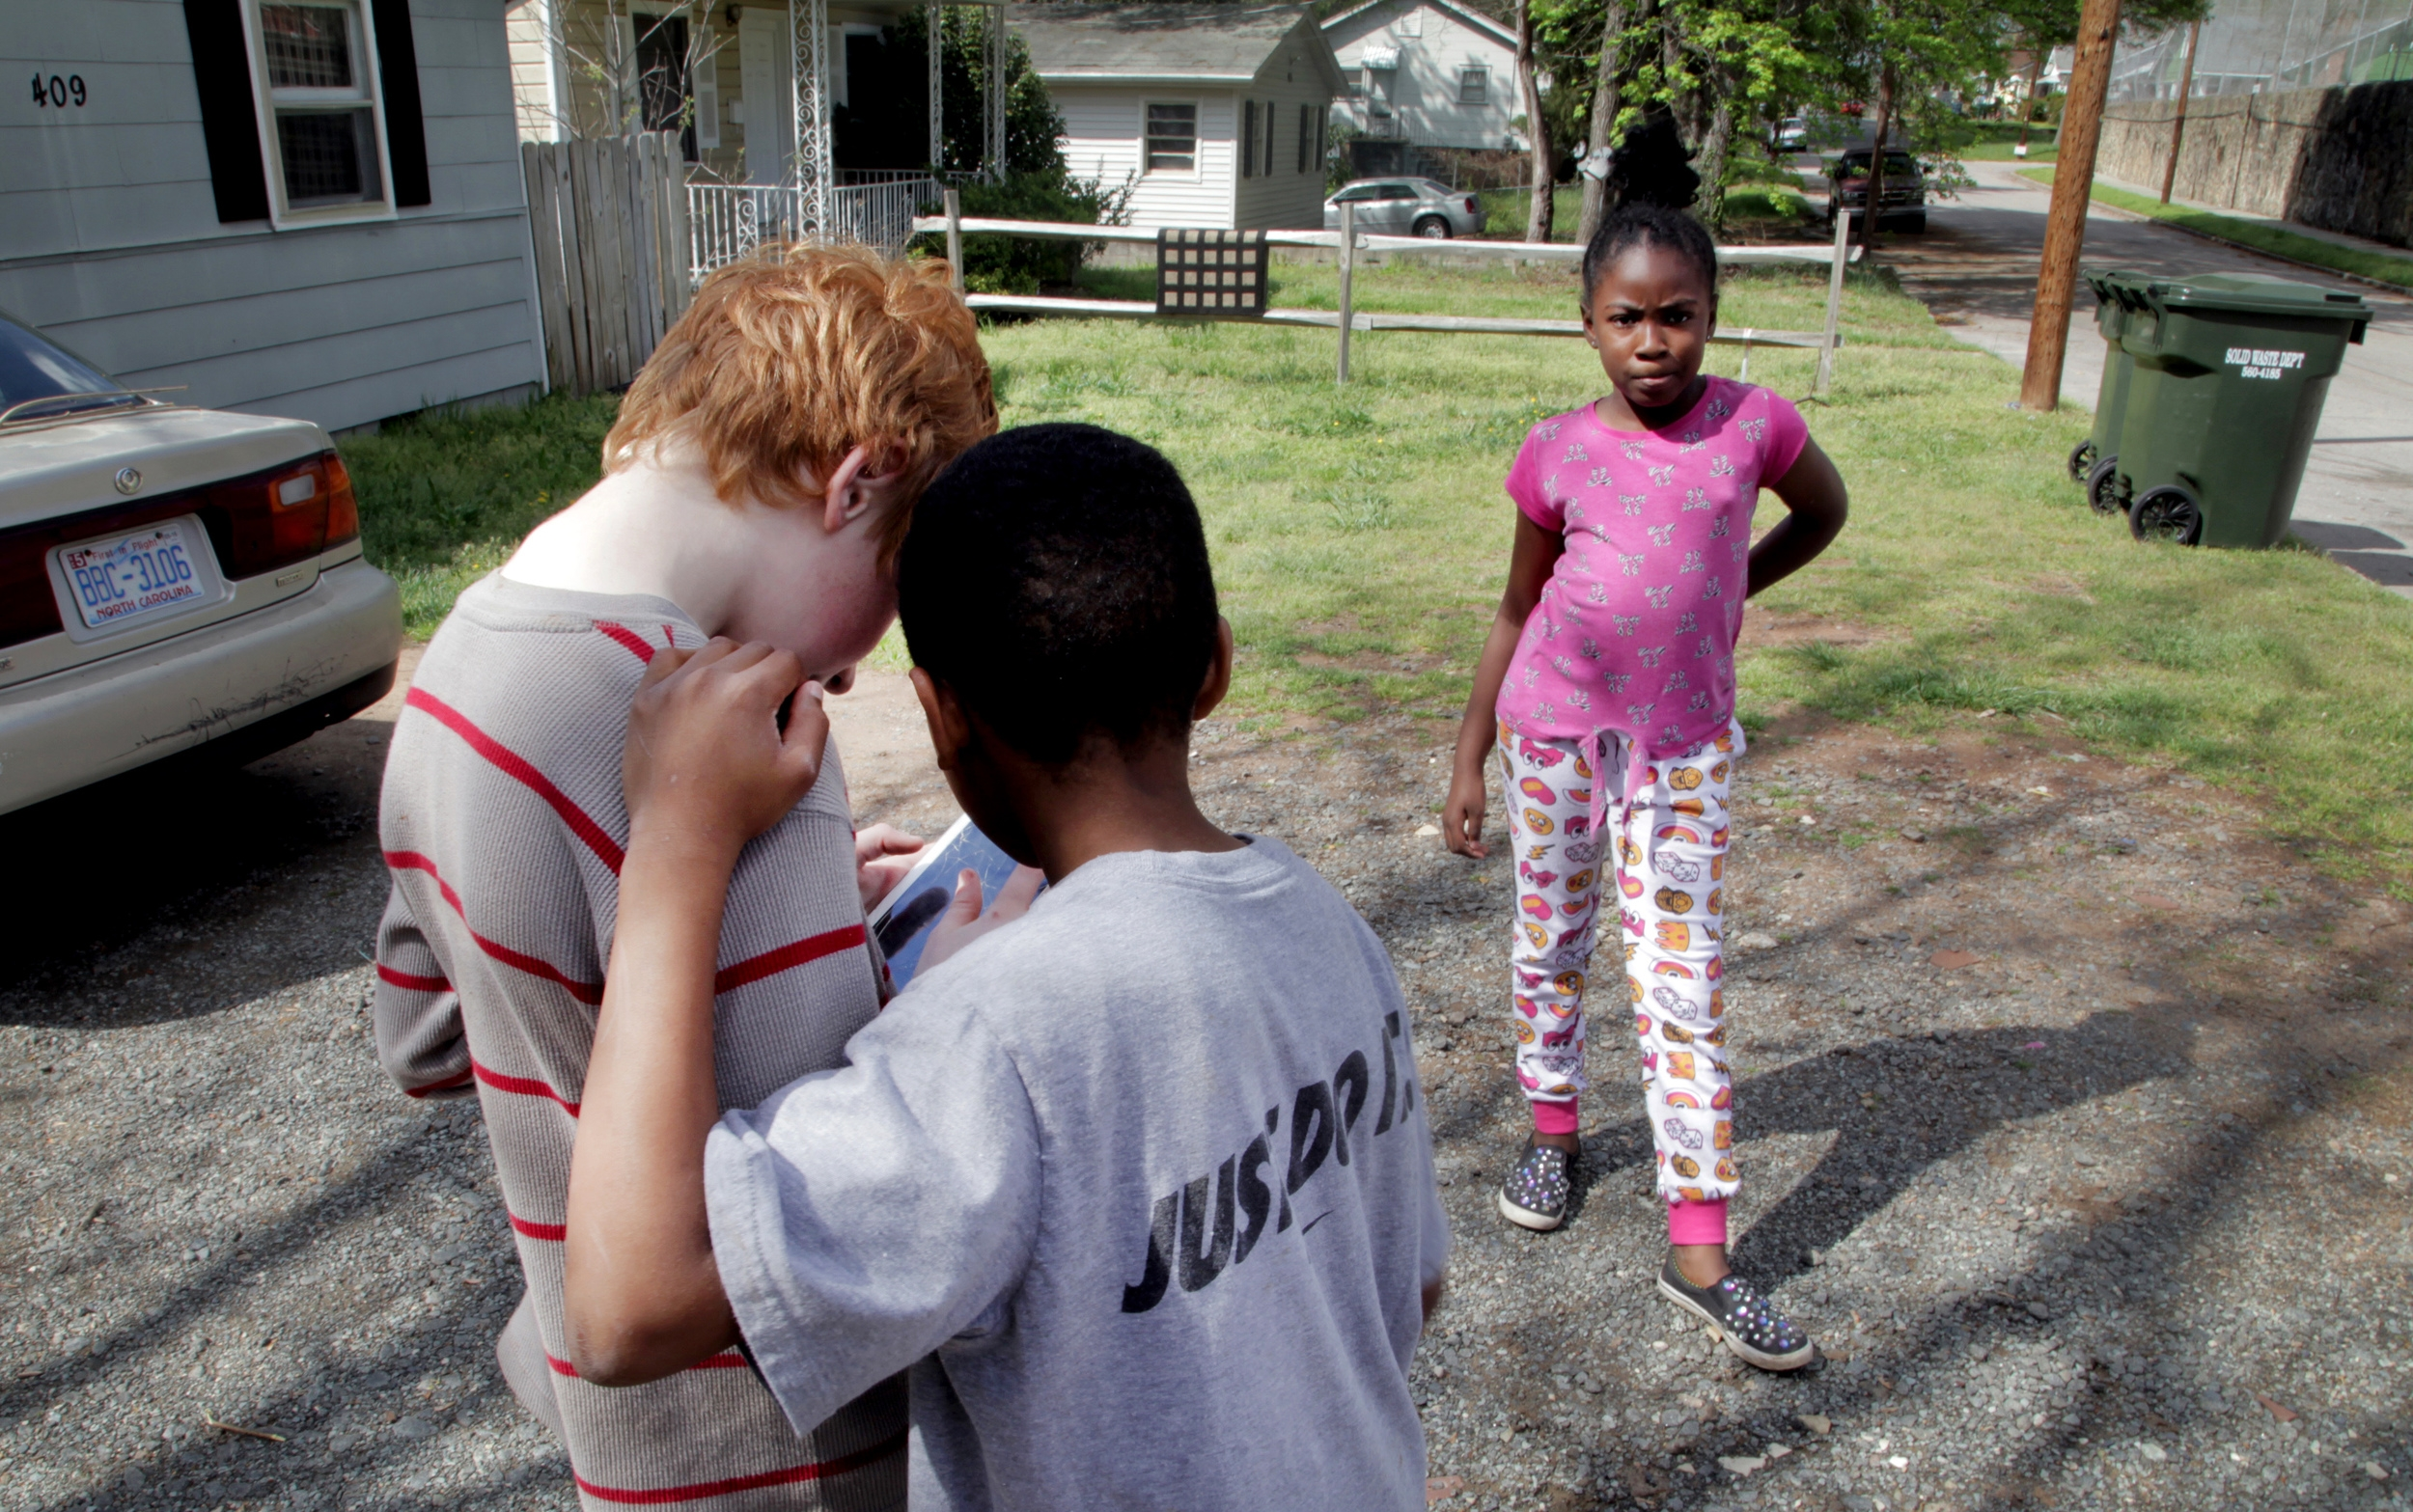 In Lyon's driveway, the boys look up the gas masks, goggles, and boots they hope to buy on the cracked screen of Barrett's tablet. She confirms that she also wants to buy some supplies for the club. Bunting points out the goggles he's got slated for Barrett. Blackjack Club will be ready.